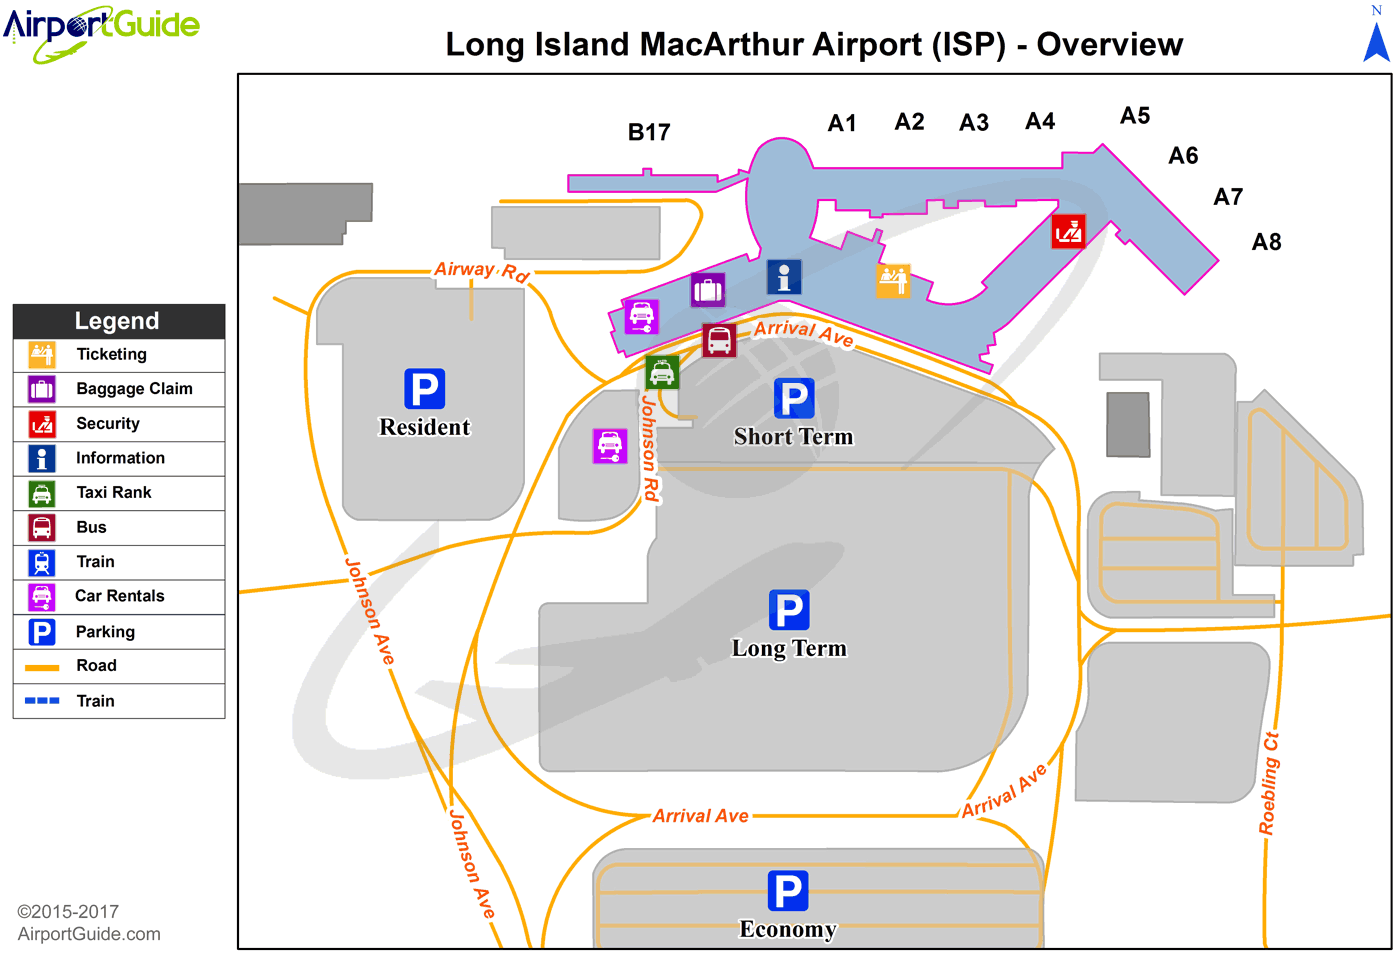 New York - Long Island Mac Arthur (ISP) Airport Terminal Map - Overview